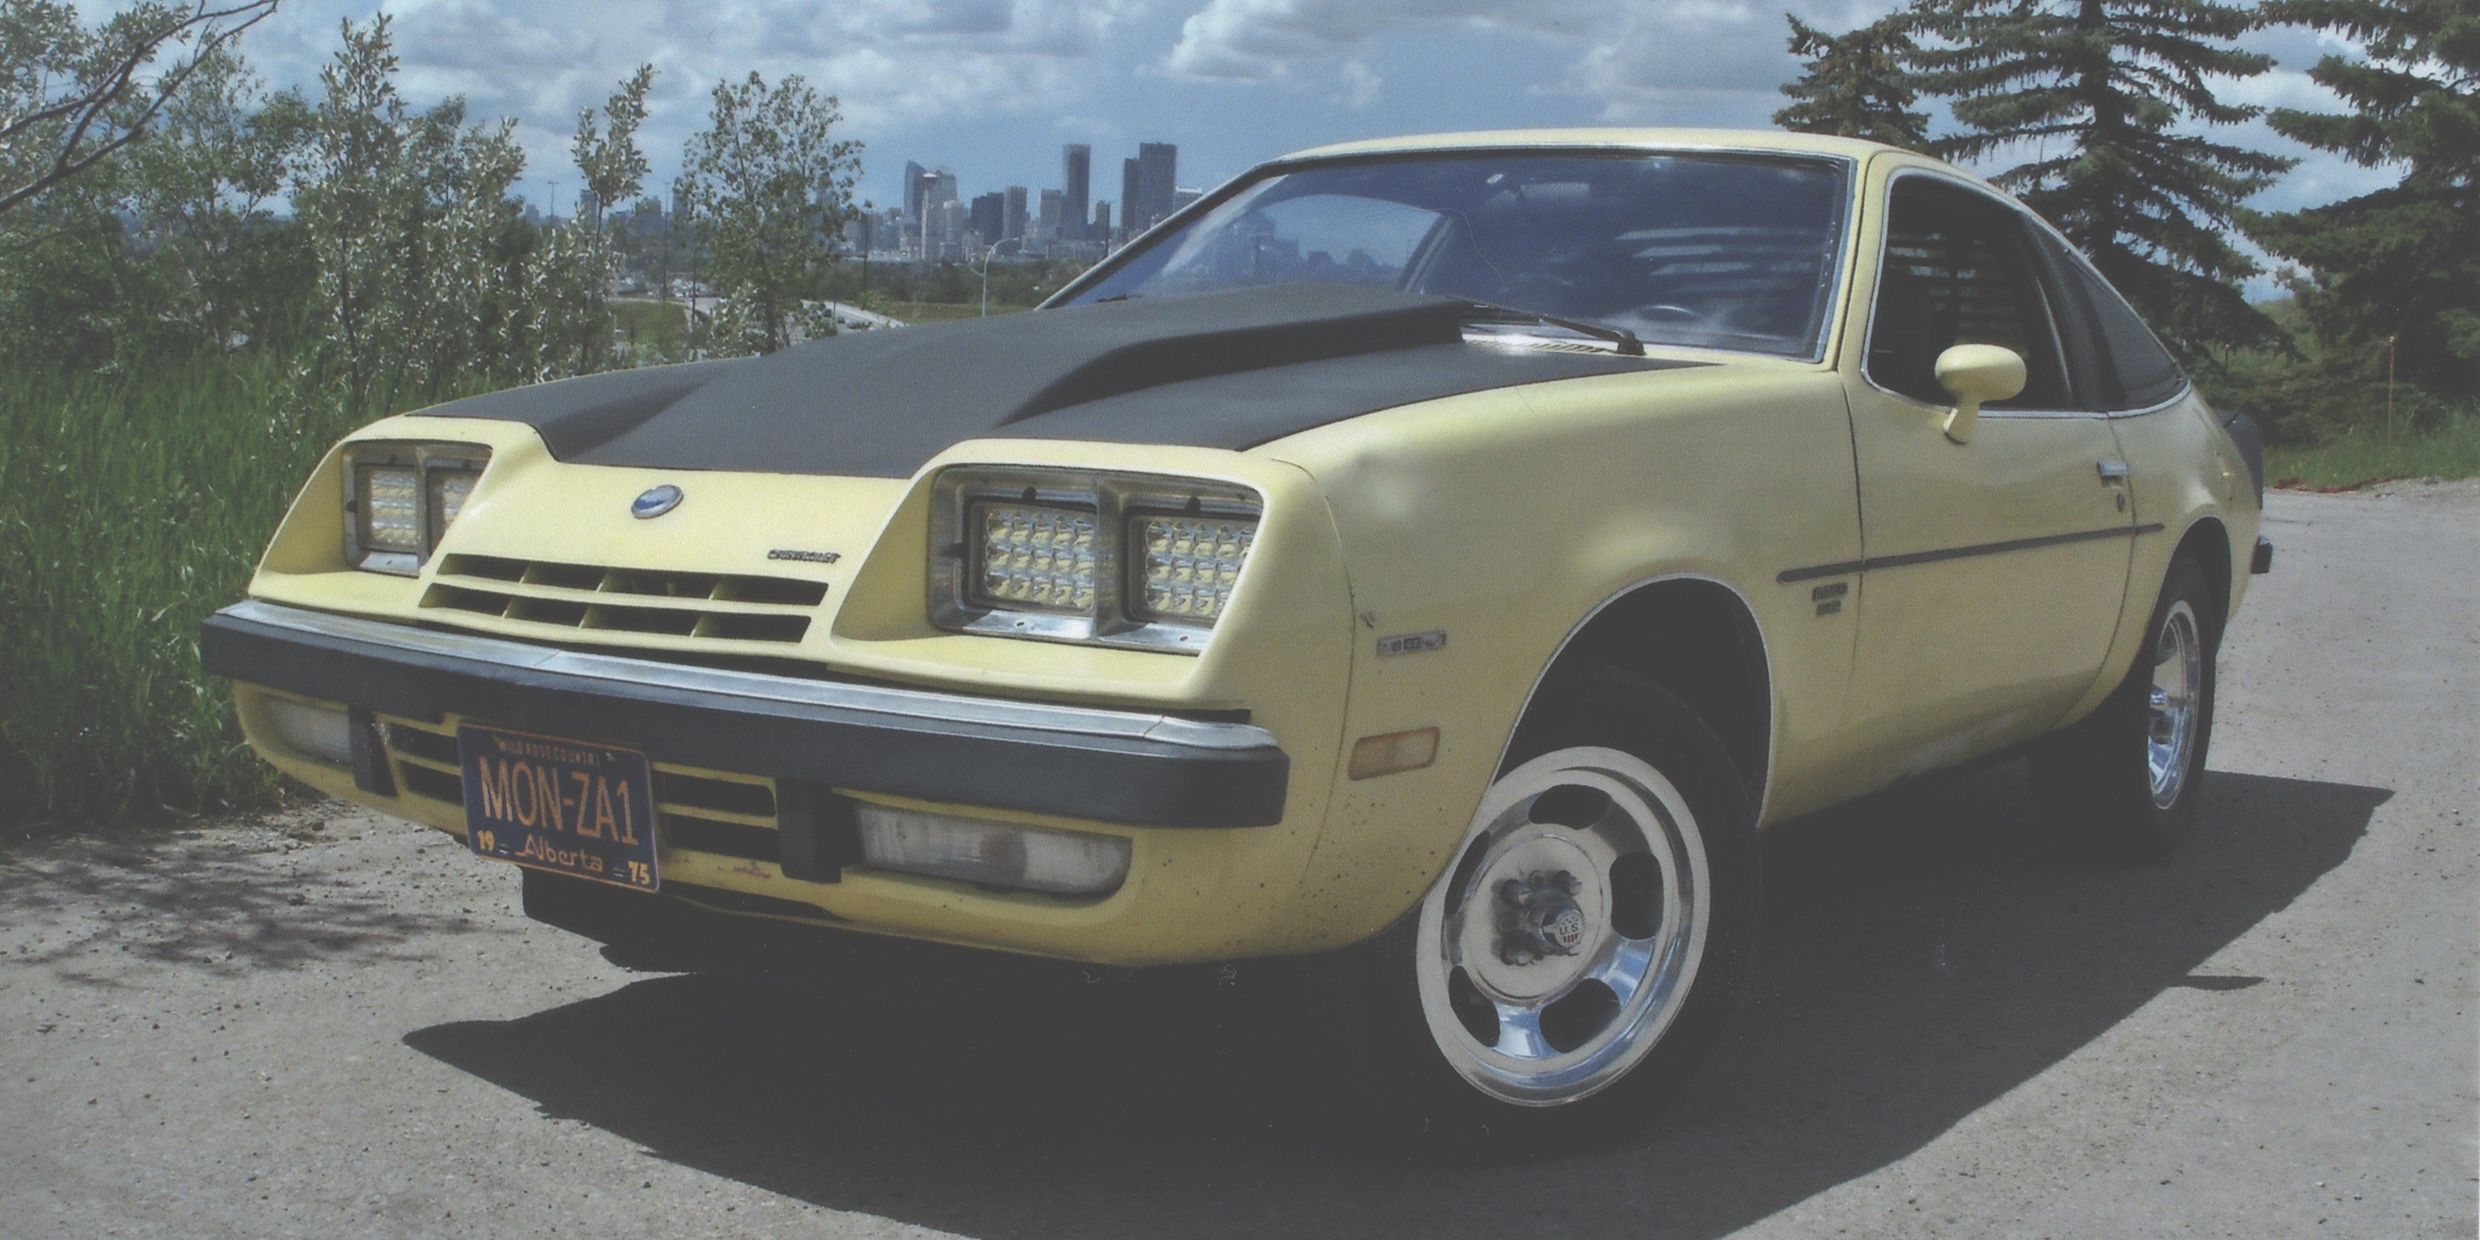 It S Mine 1975 Chevrolet Monza Chevrolet Monza Chevrolet Pony Car